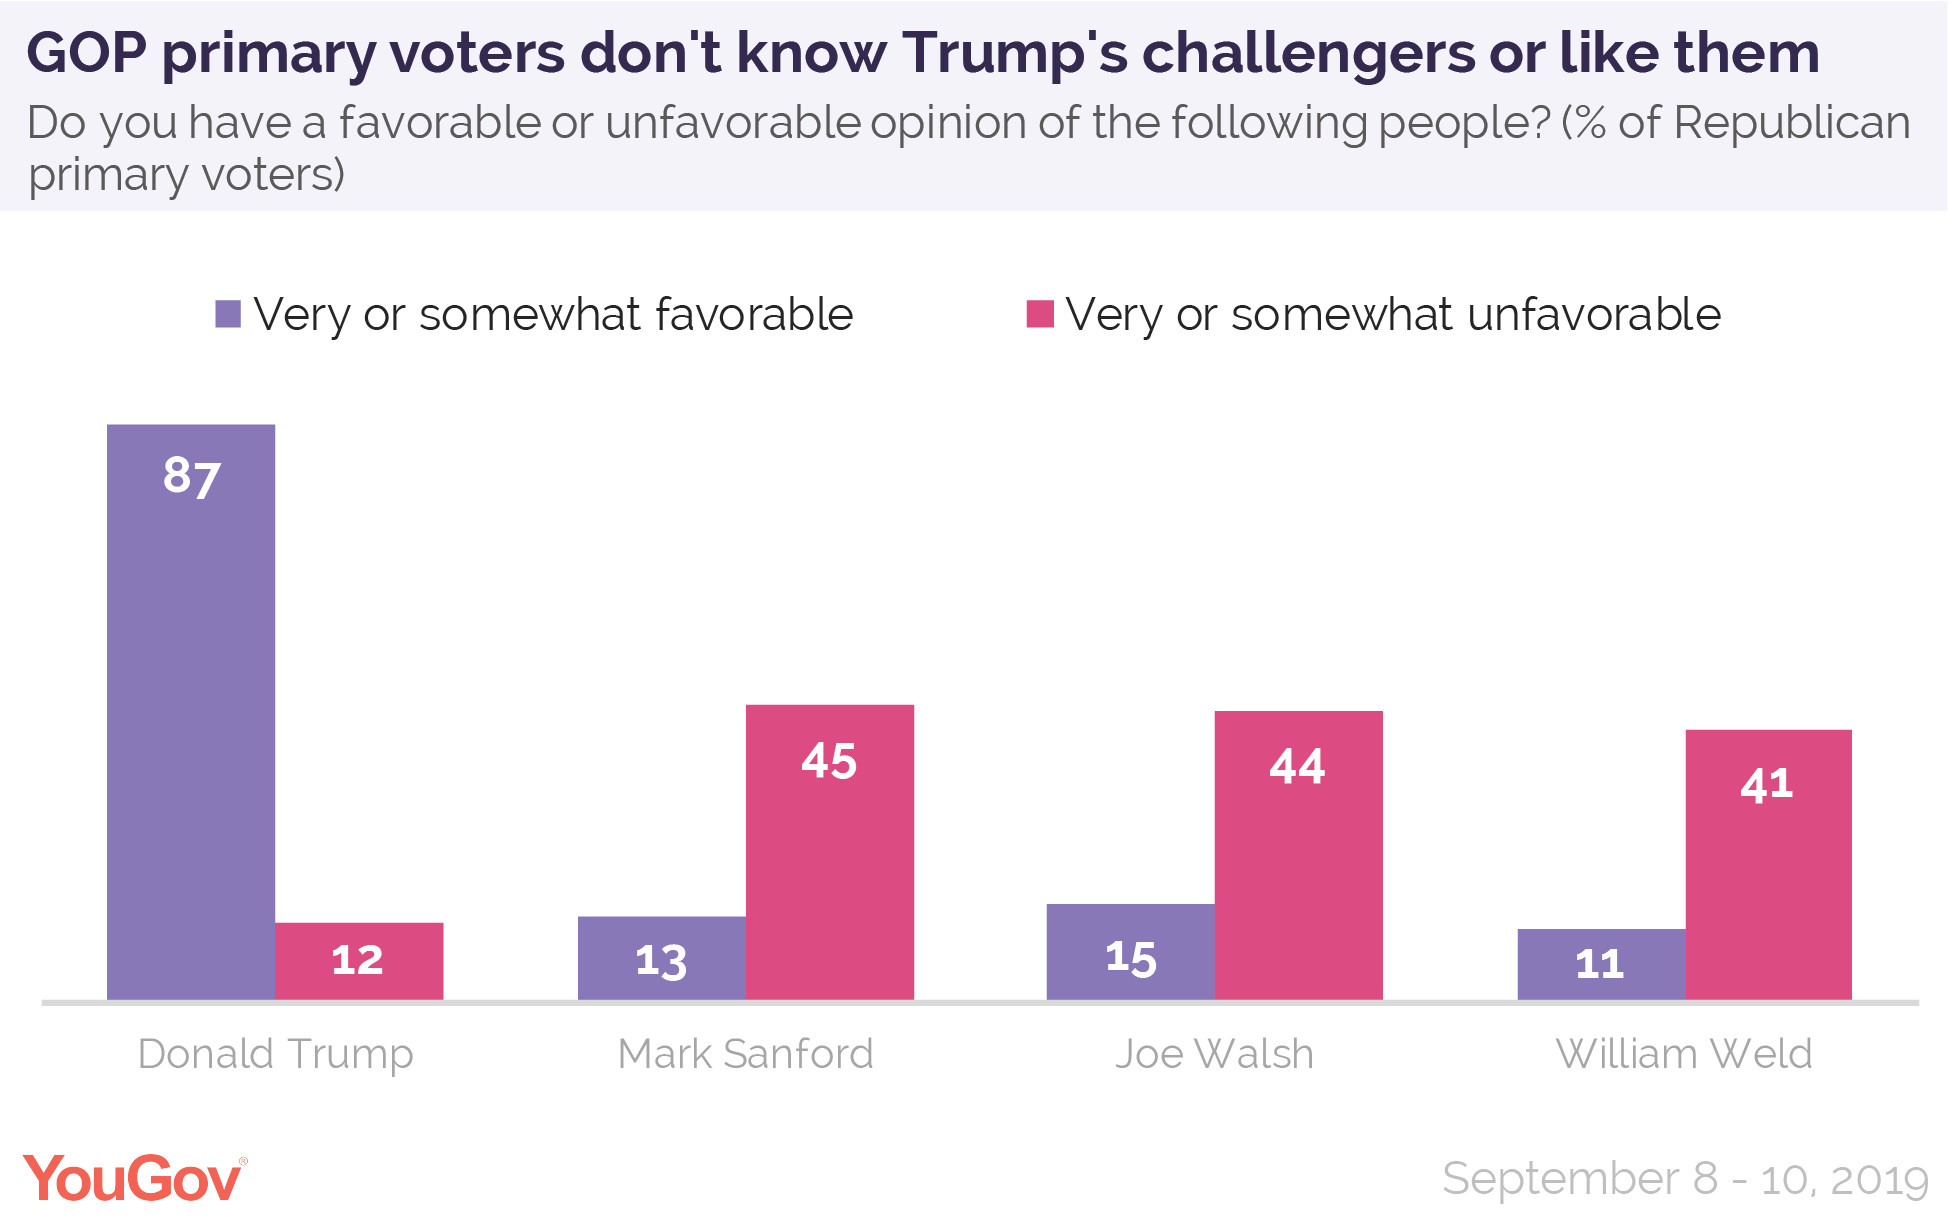 GOP primary voters don't know President Donald Trump's challengers or like them